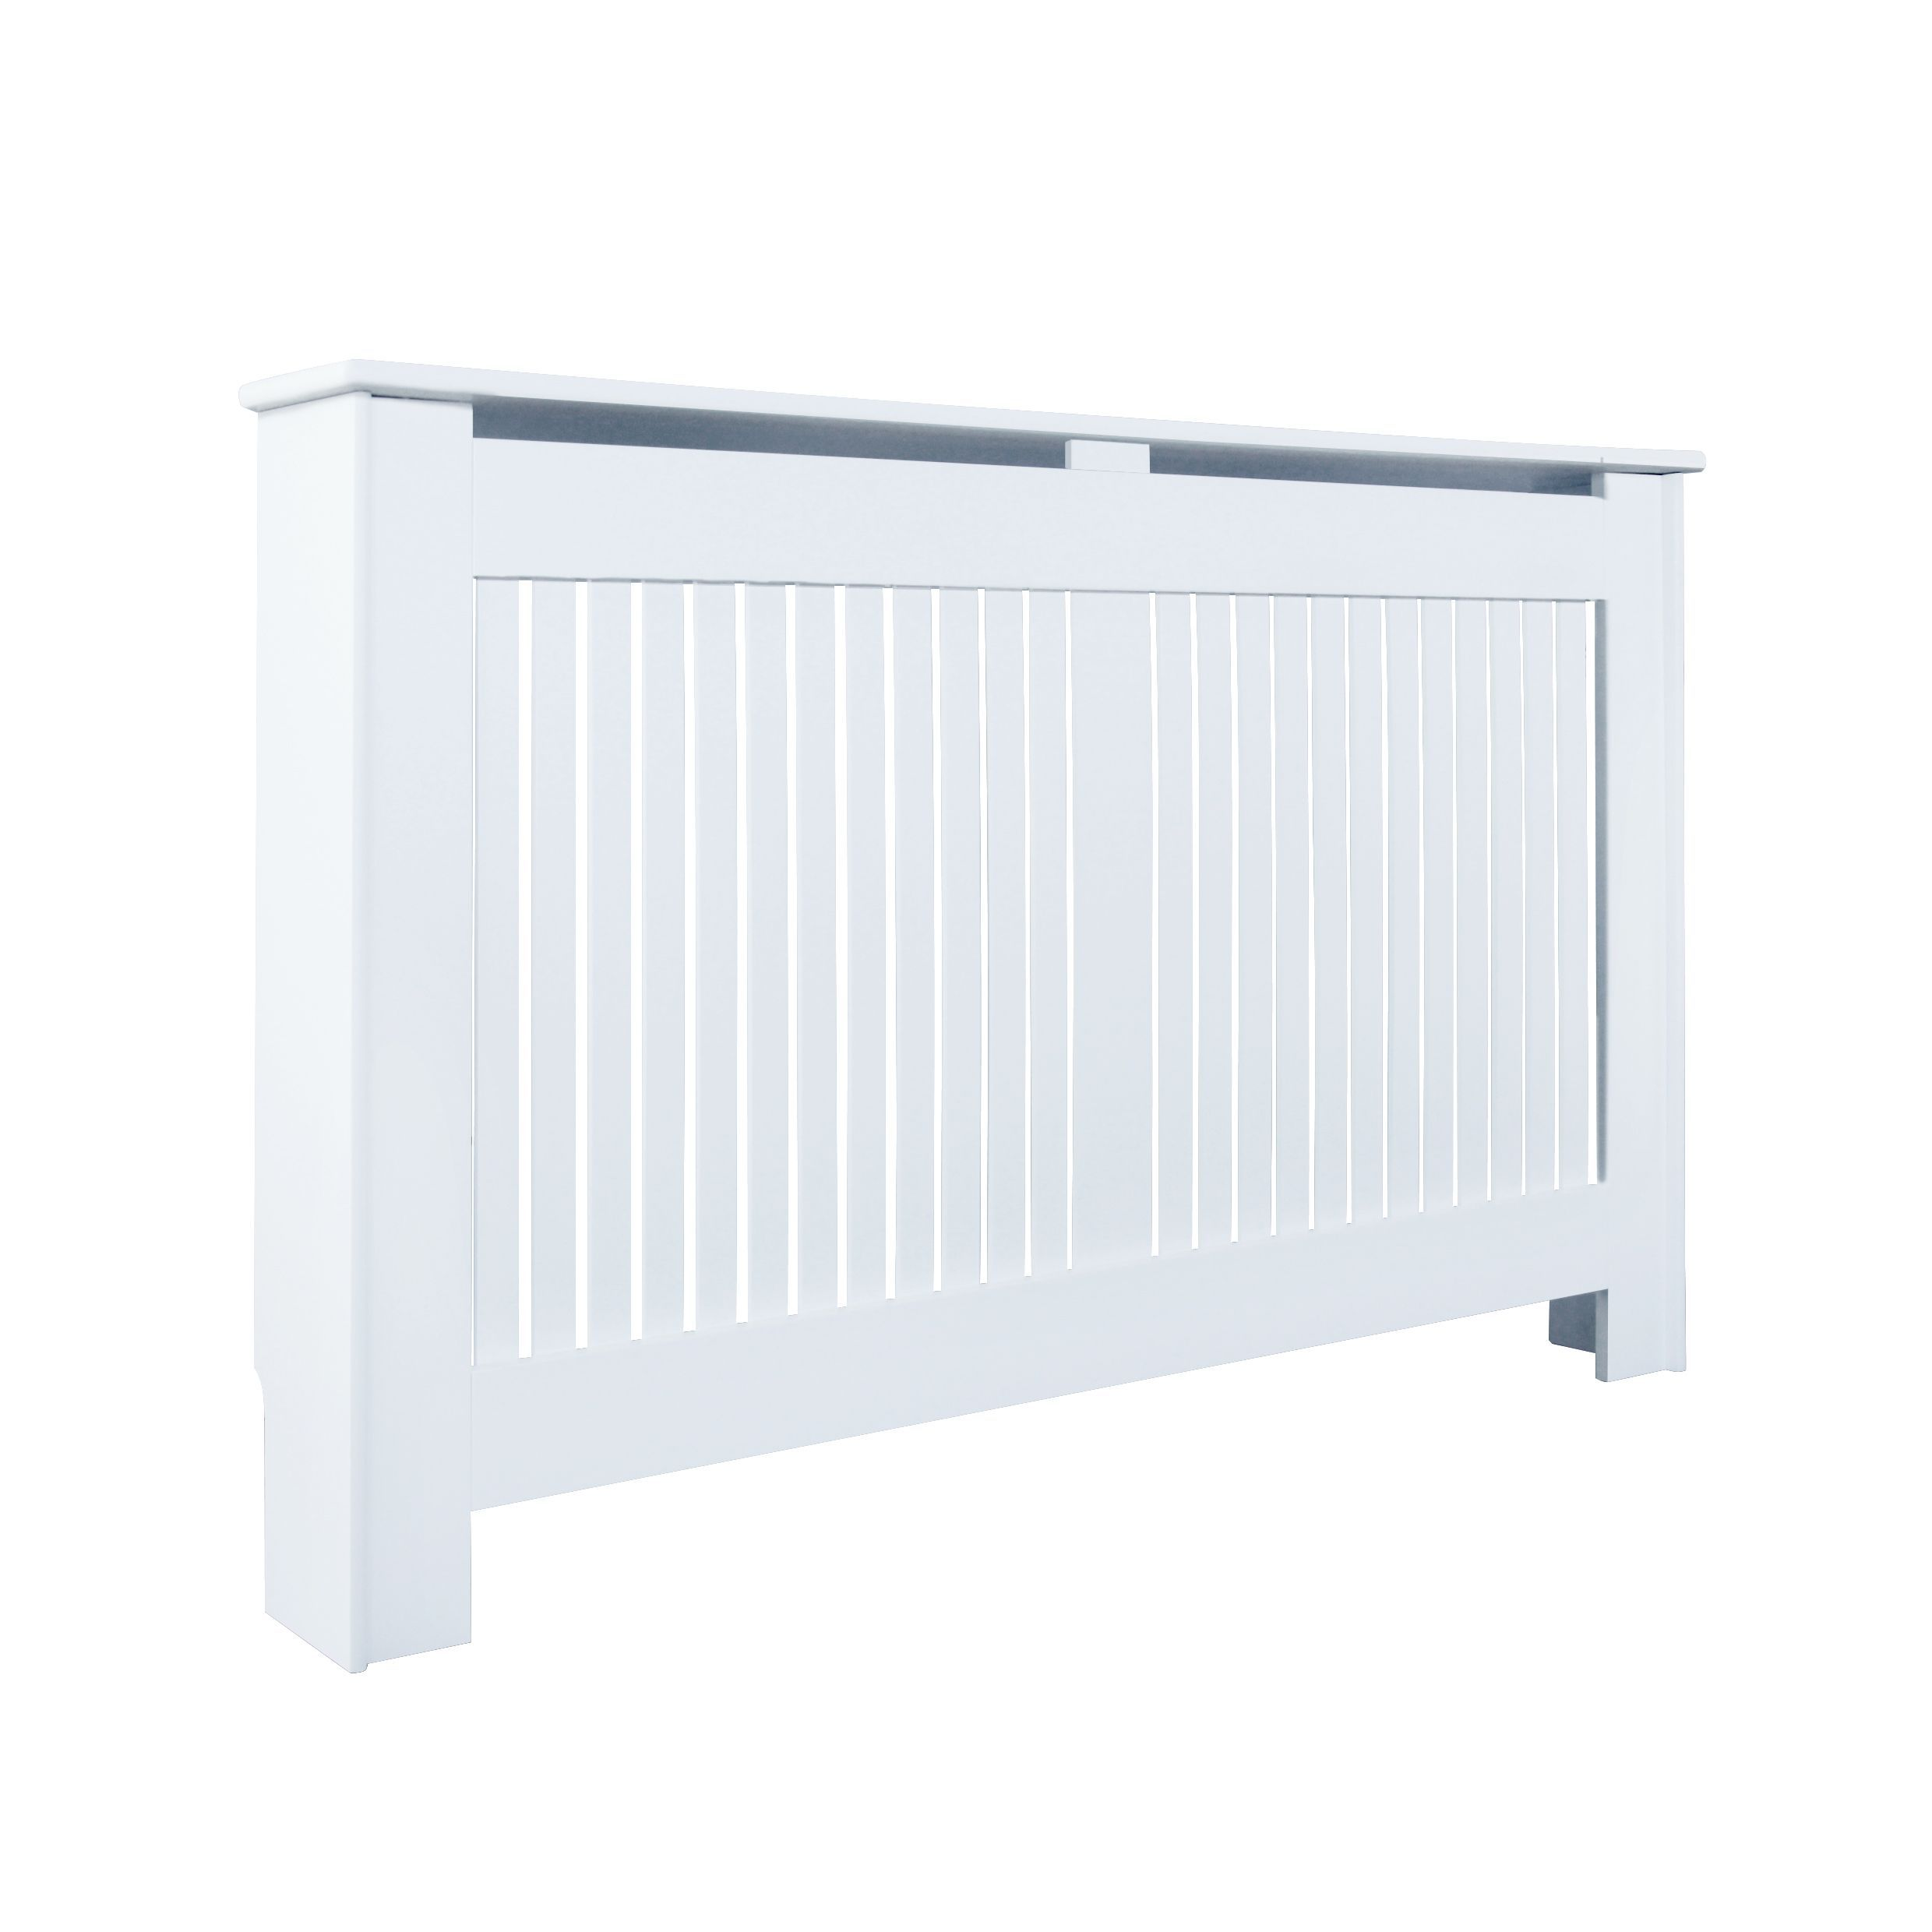 Kensington Large White Painted Radiator Cover | Departments | DIY at B&Q